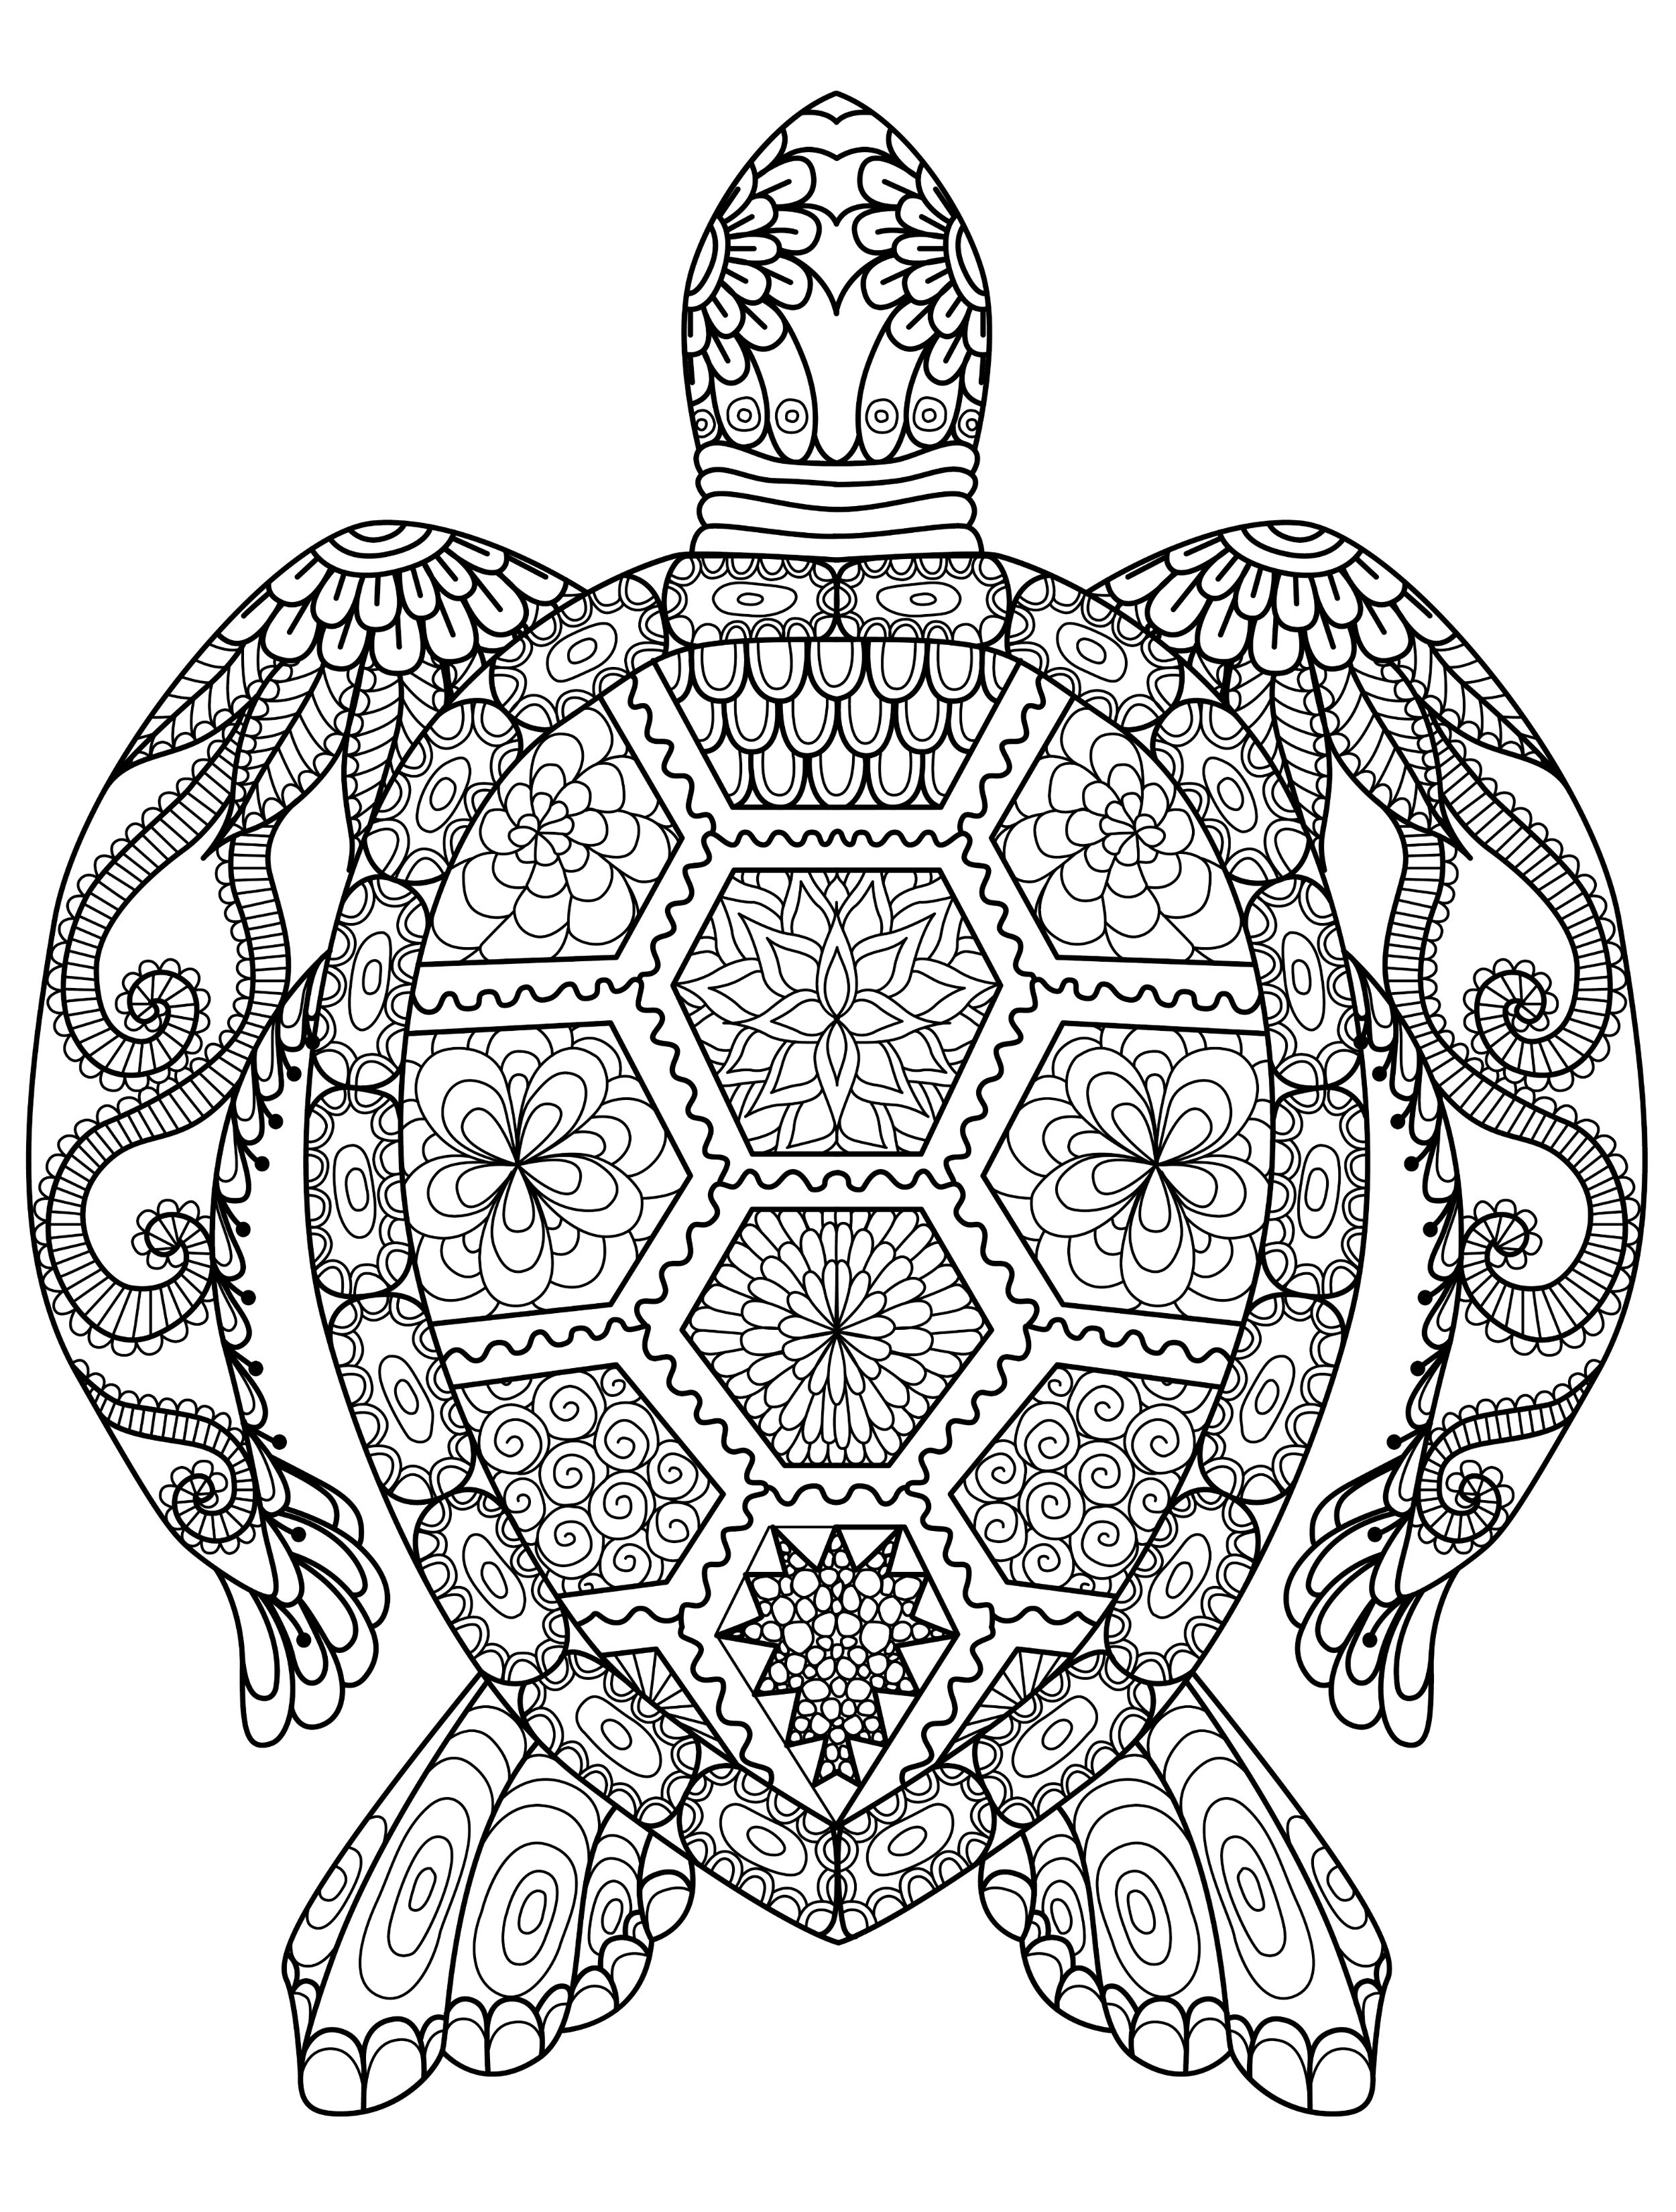 detailed animal coloring pages adult coloring pages dog 1 adult coloring pages more coloring pages animal detailed